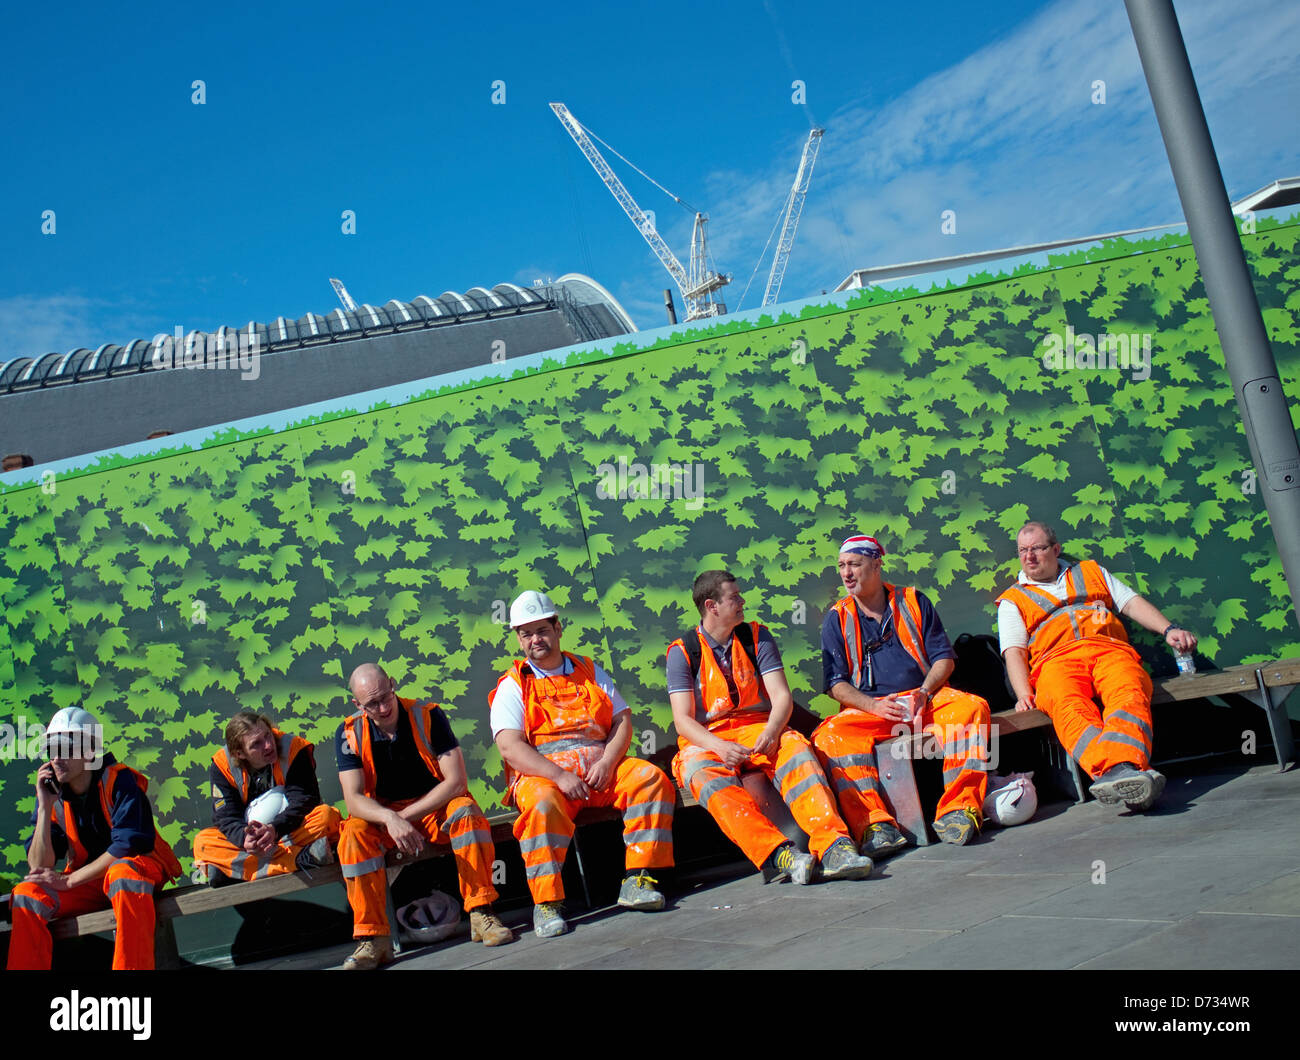 Seven workers wearing orange high visibilty saftey clothing taking a break on Kings Boulevard, Kings Cross, London - Stock Image